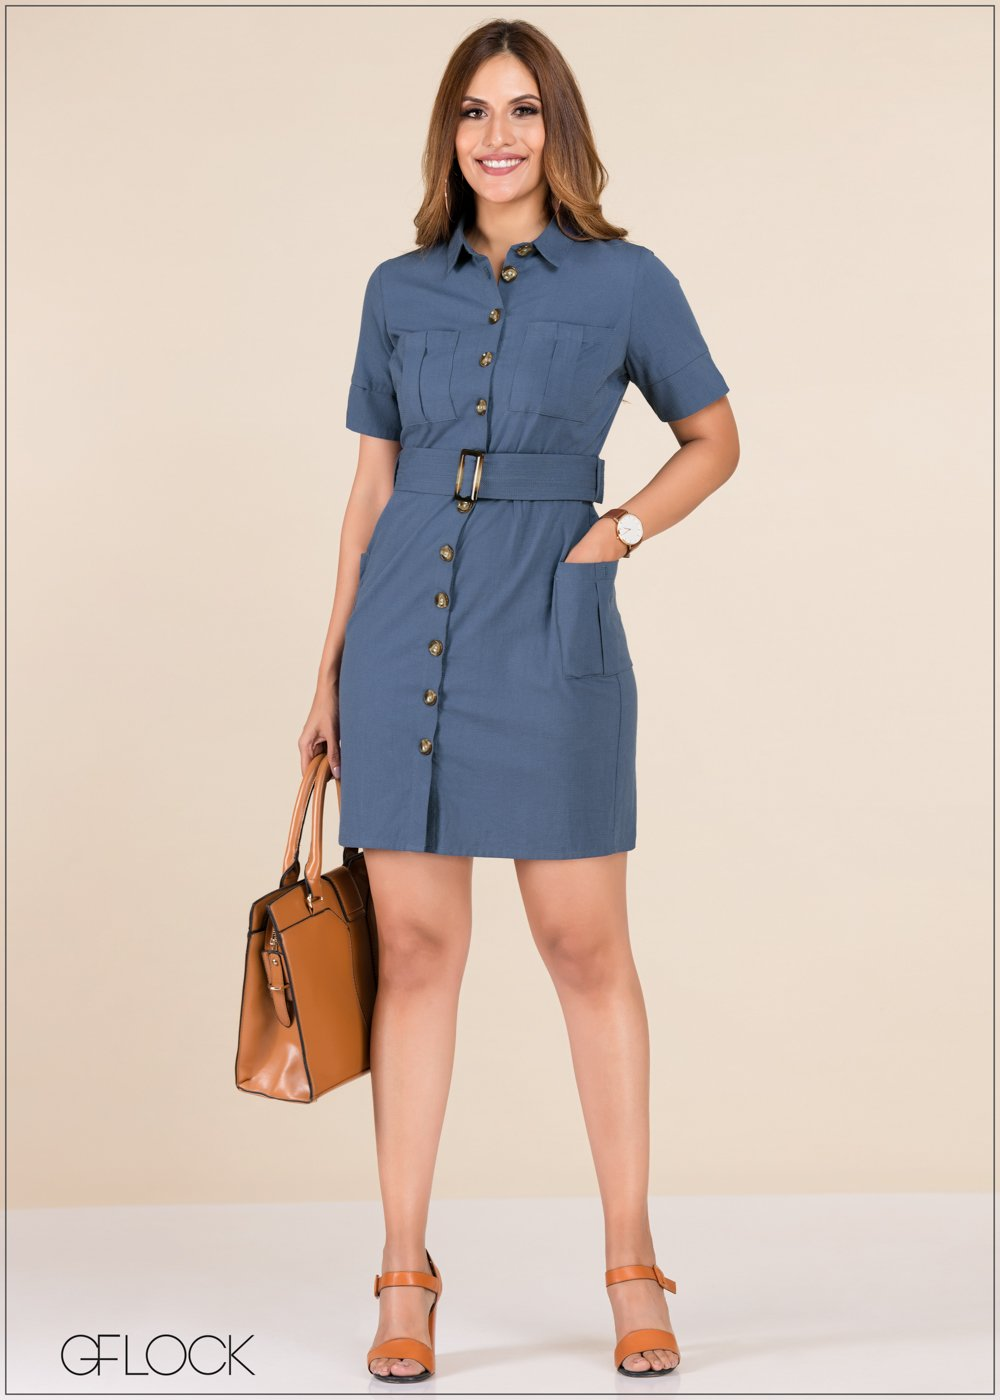 GFLOCK - [product_sku] - Women_Dresses - Front Buttoned Dress